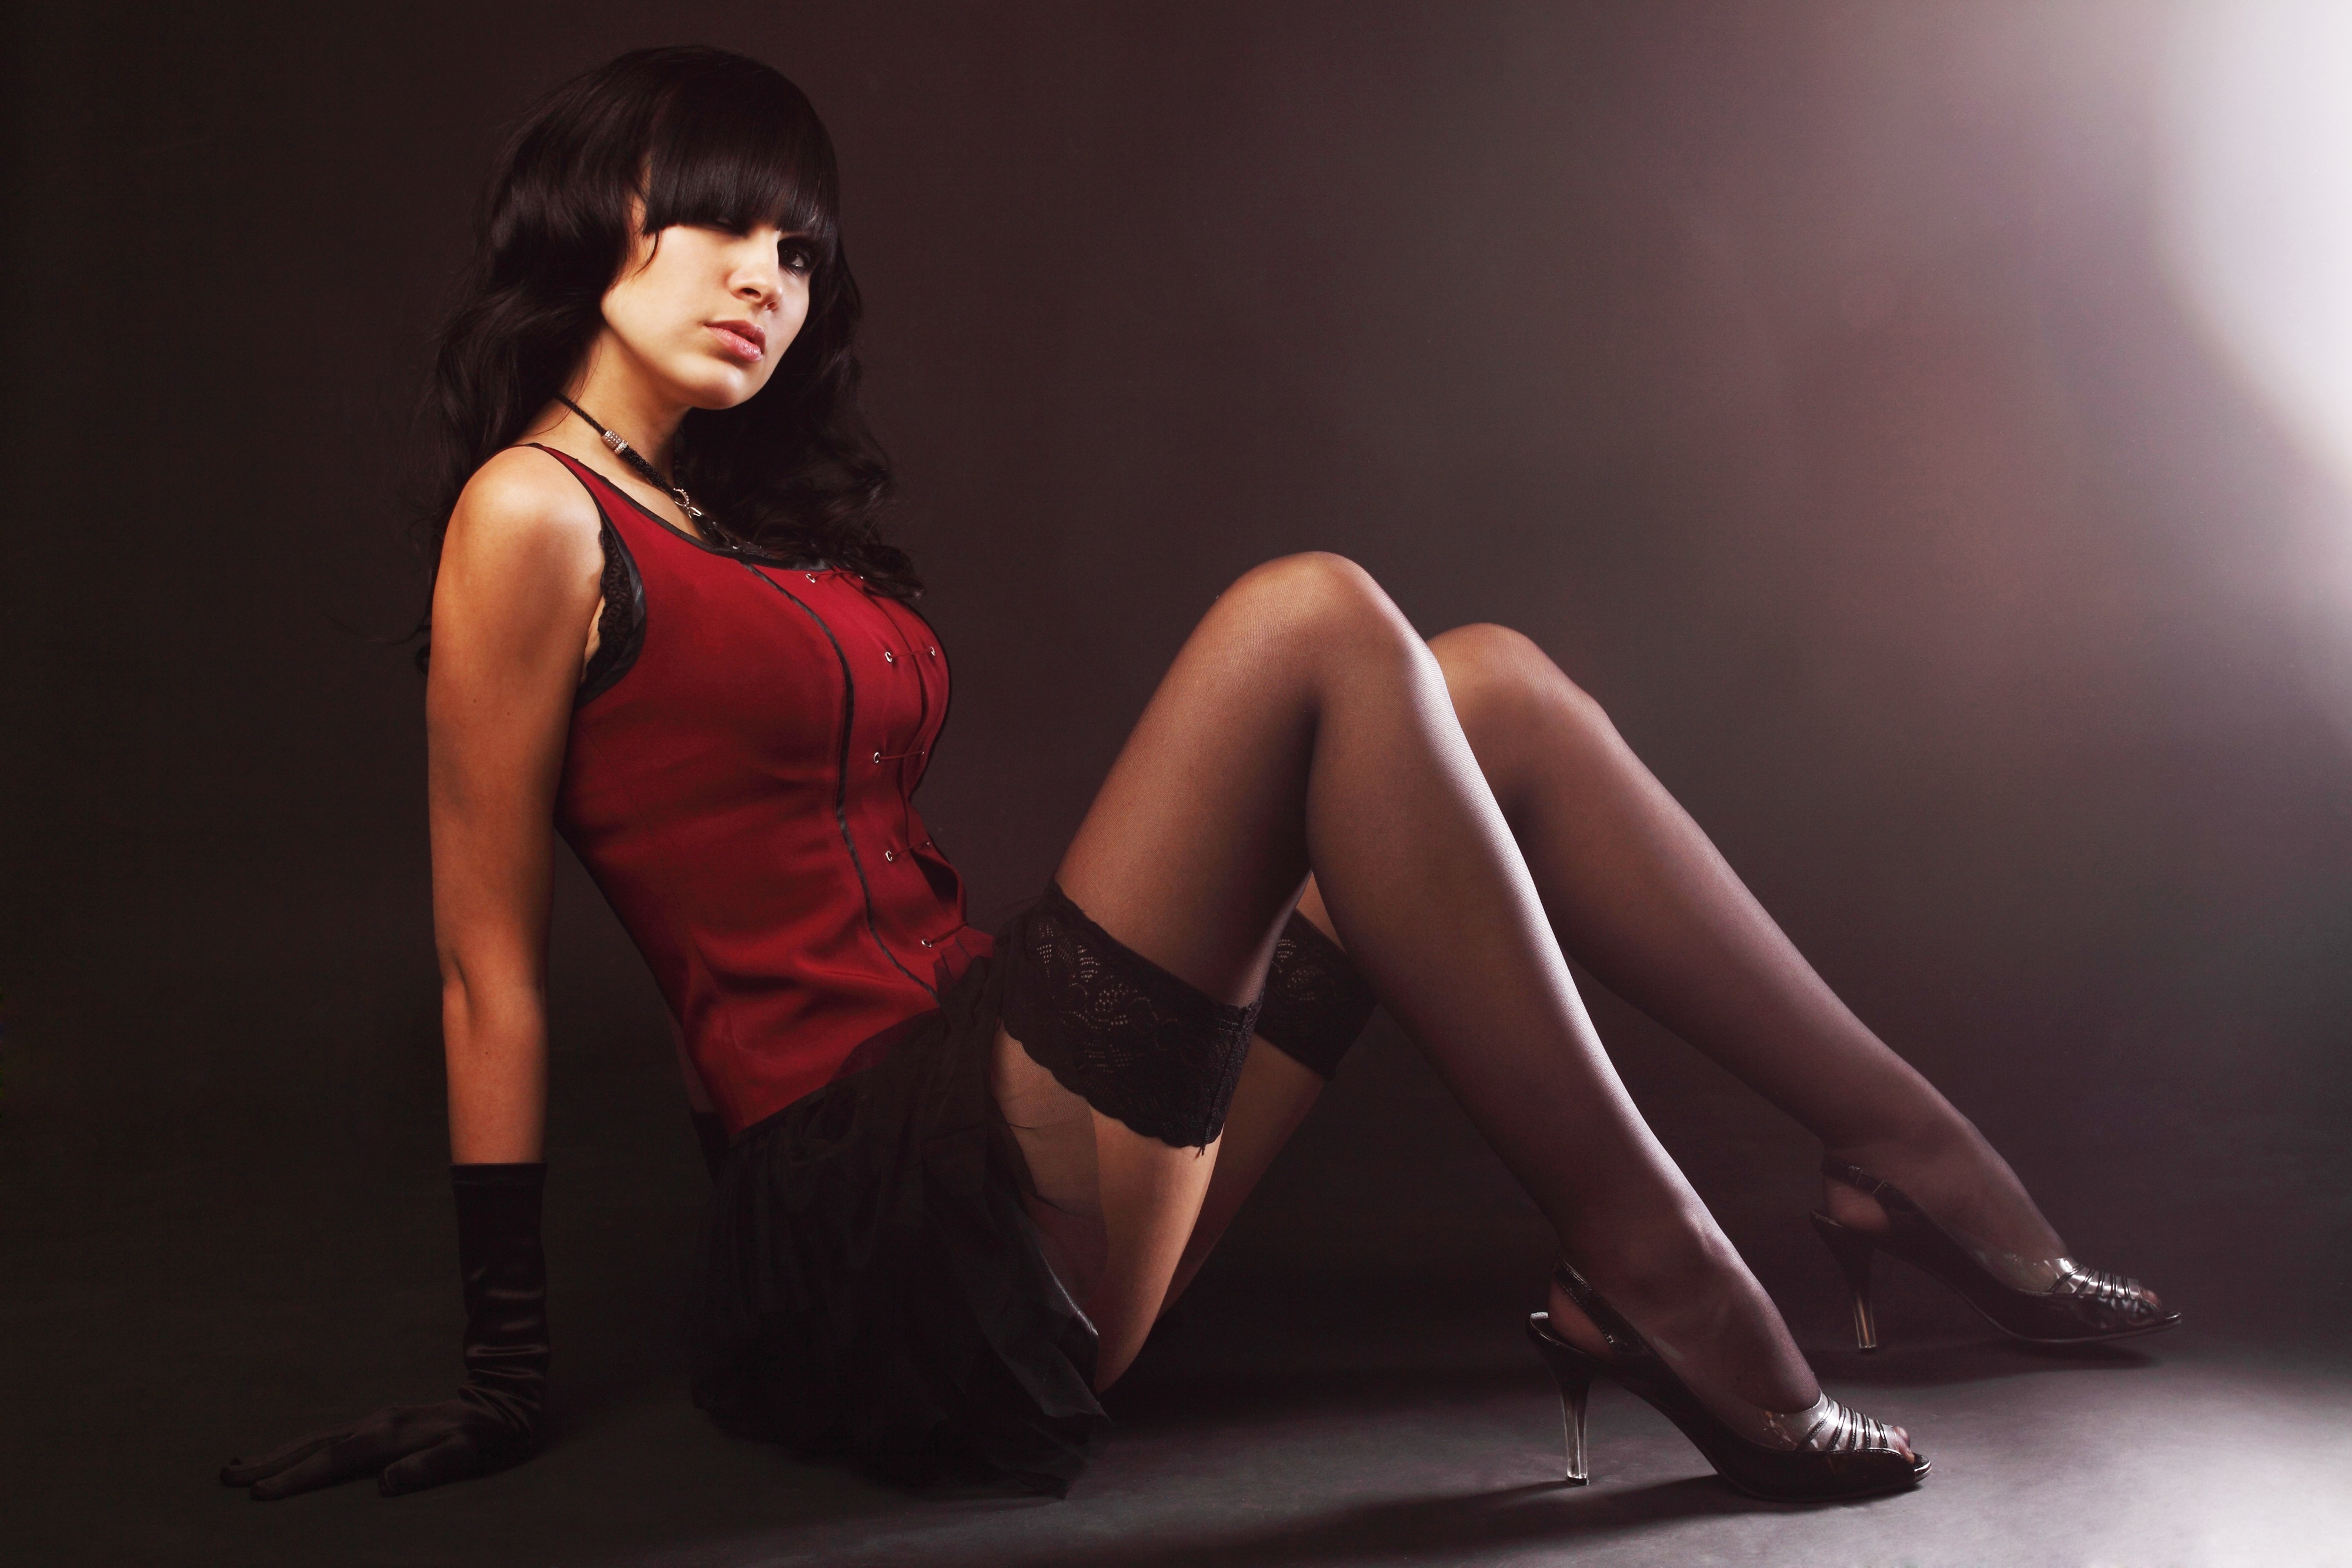 brunettes woman stockings fashion HD Wallpaper